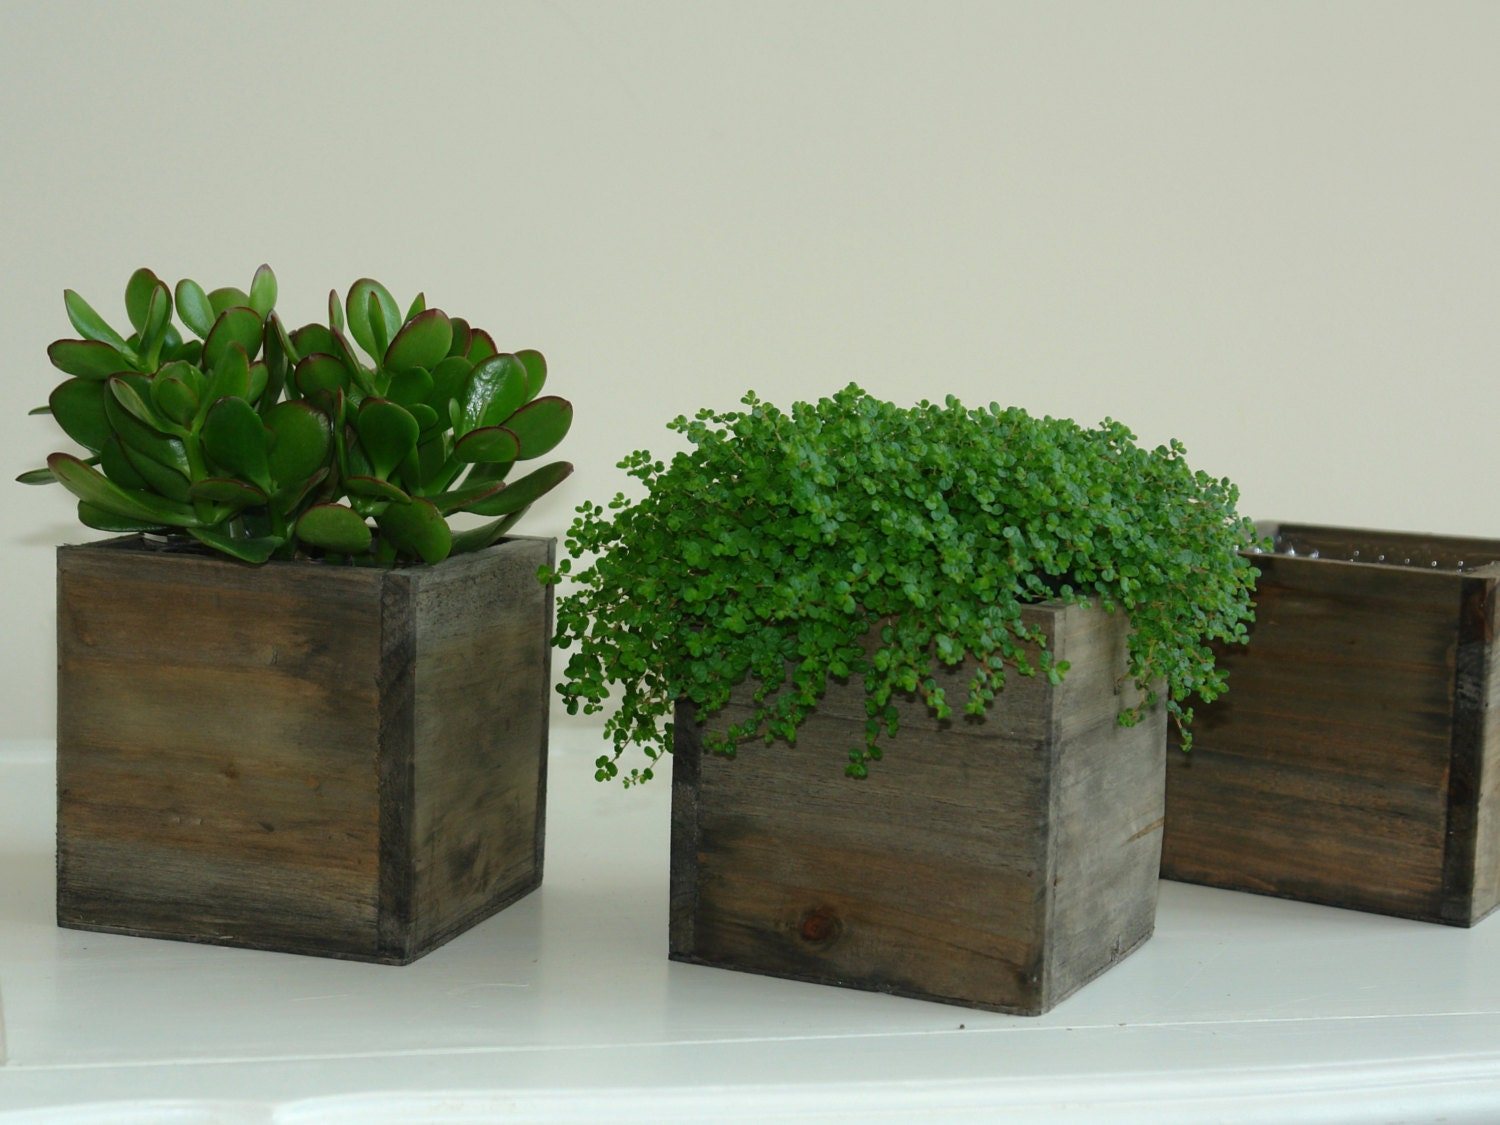 Wood box boxes woodland planter flower rustic pot